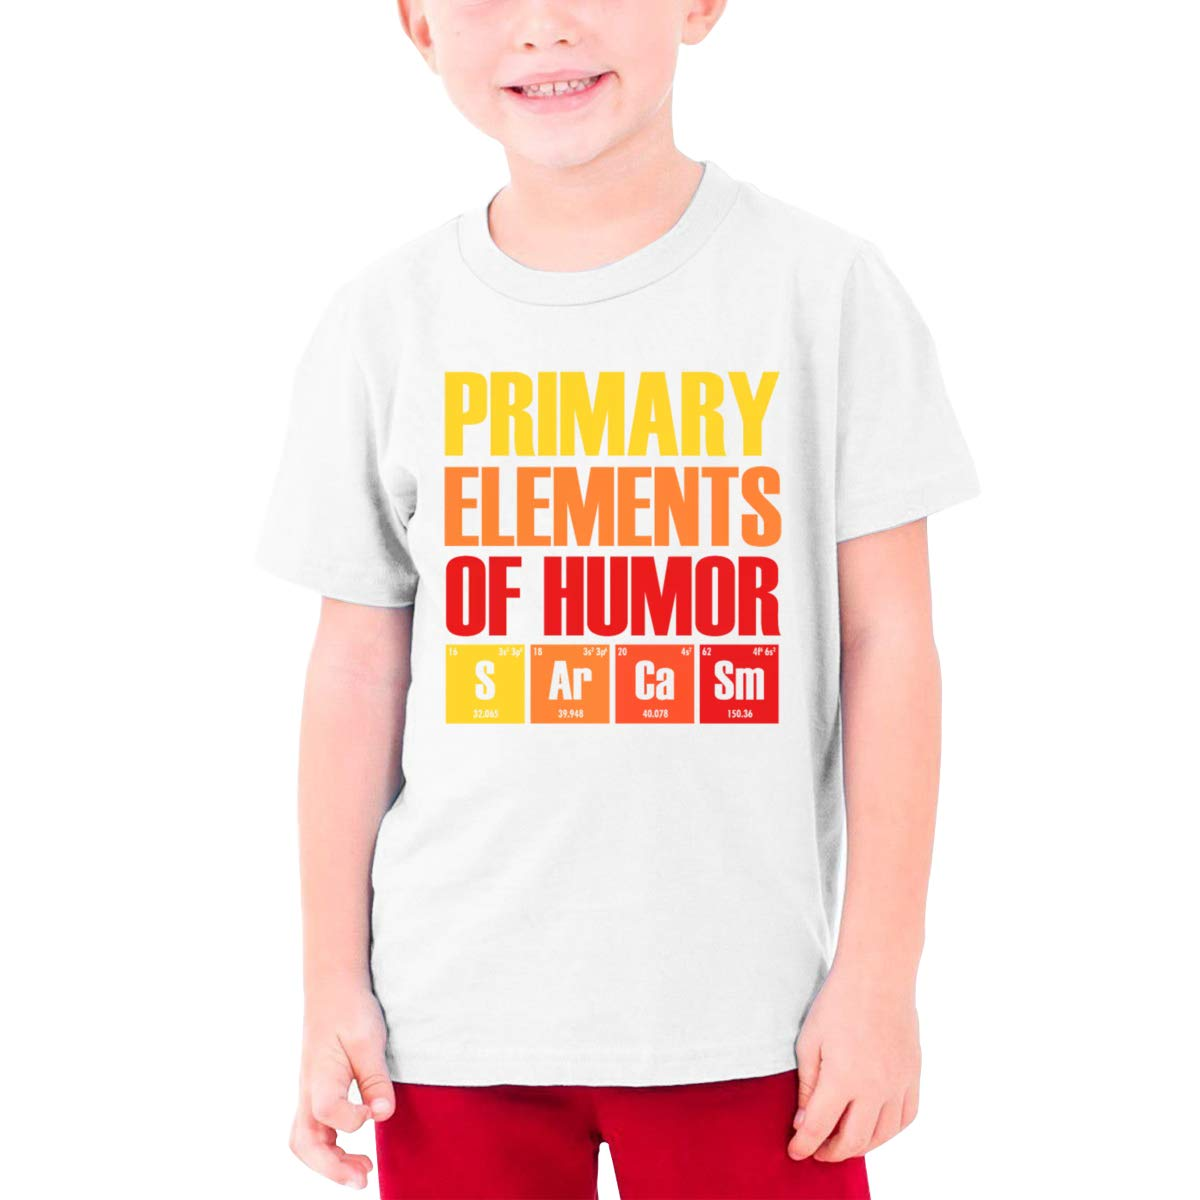 Primary Elements of Humor Boys Short-Sleeved T-Shirt